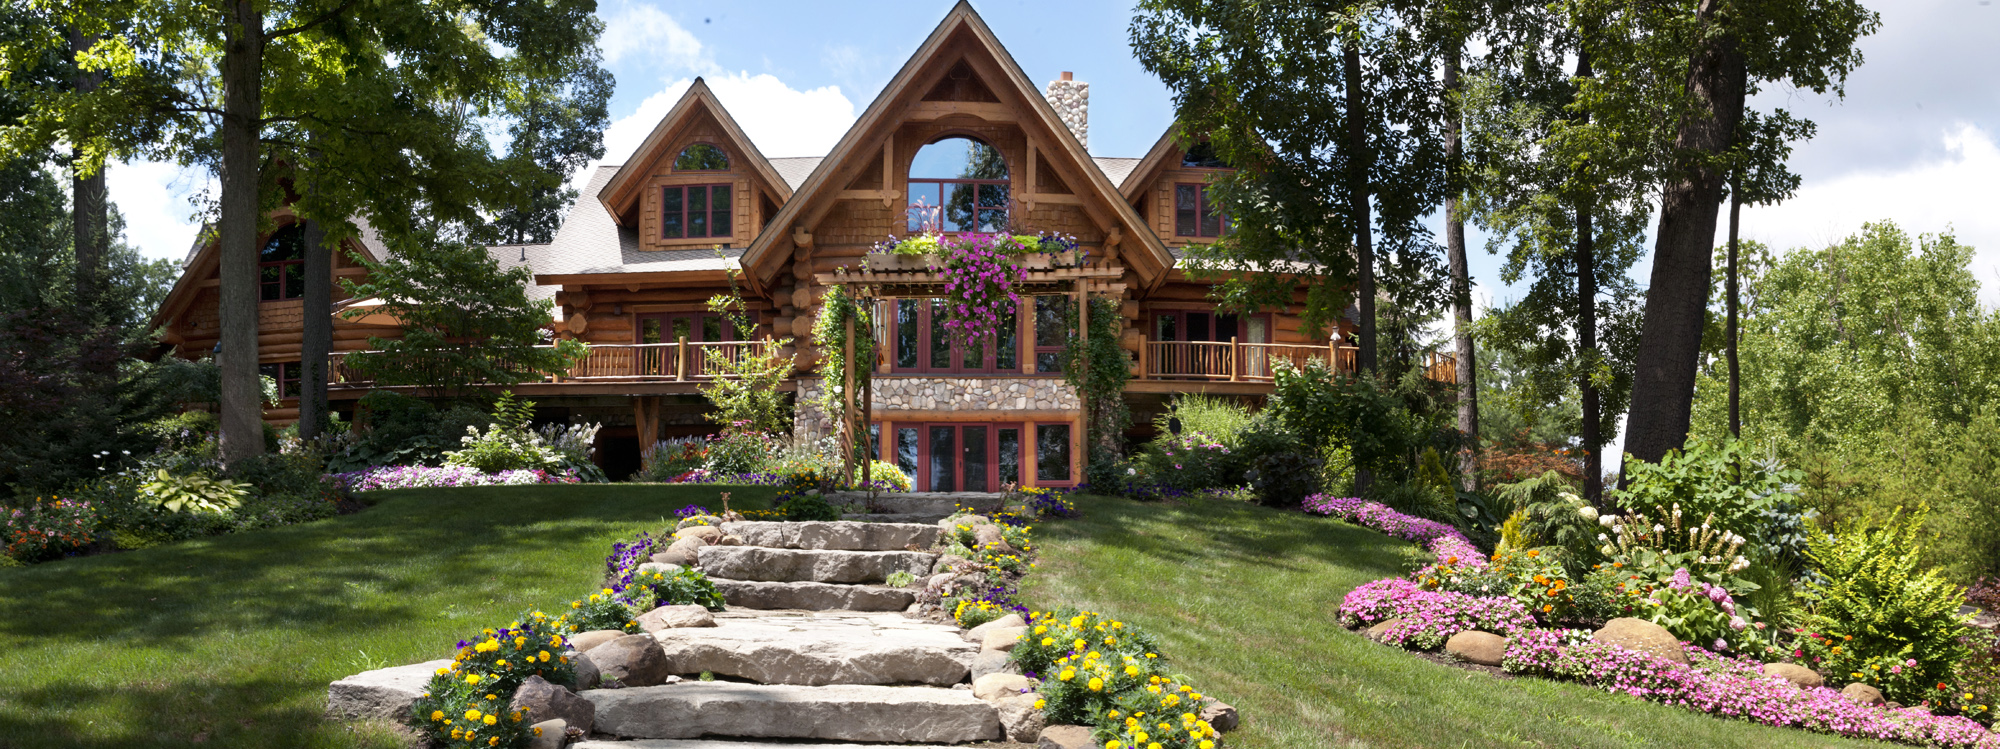 Sunset Cove Bed & Breakfast